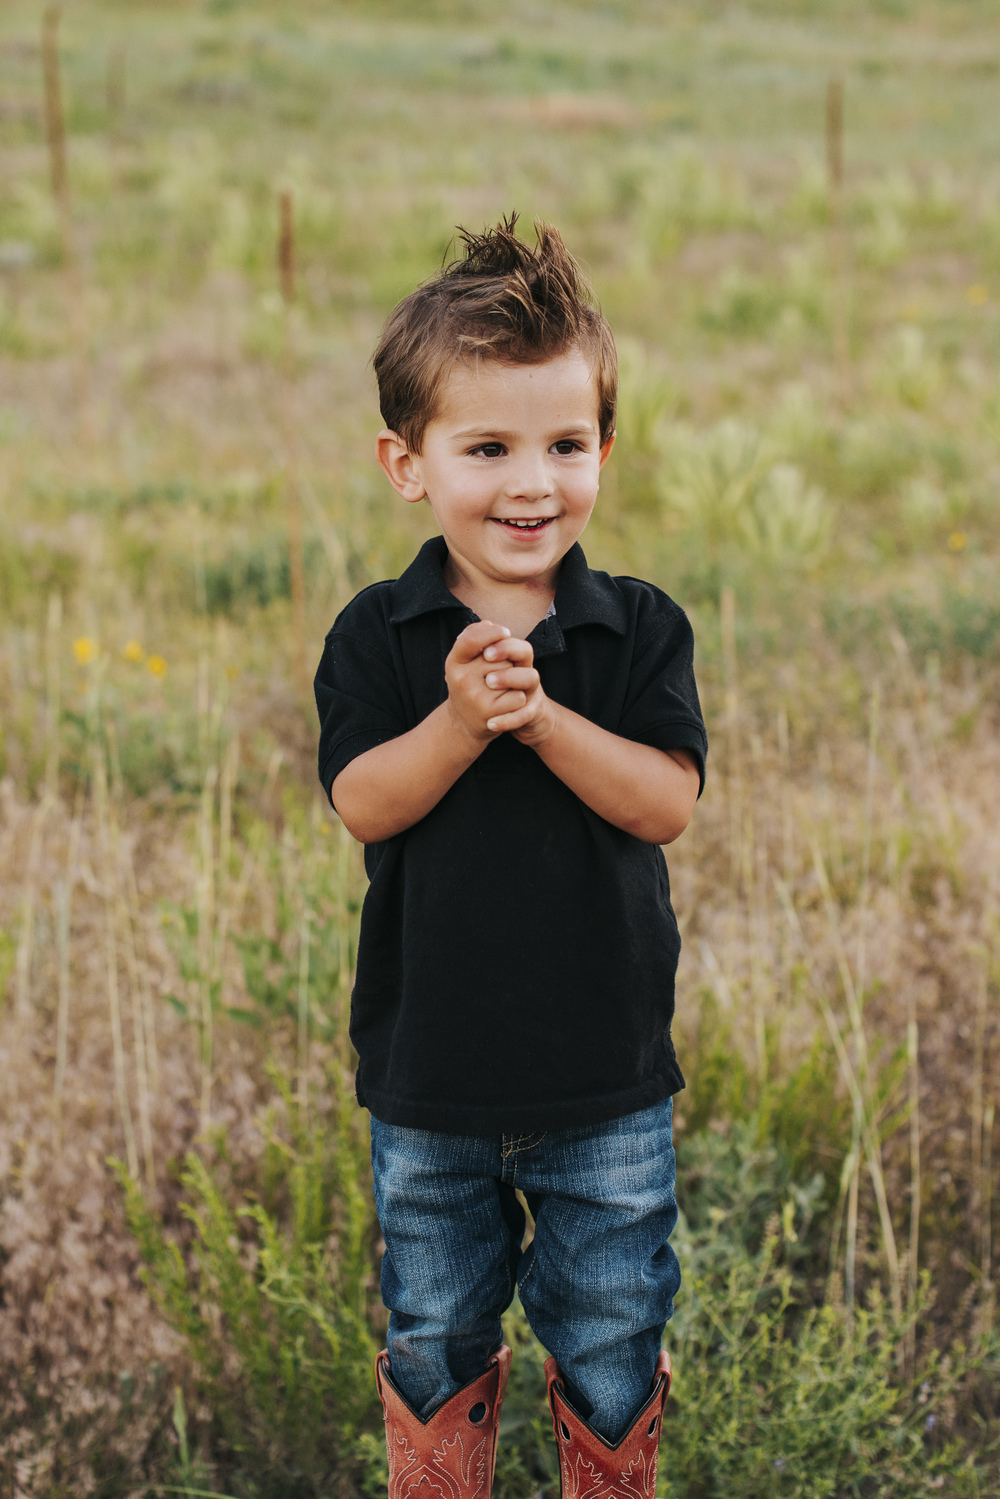 060716 webJAKE & MCKENNA FAMILY PHOTOS - COLORADO PHOTOGRAPHER - DEBI RAE PHOTOGRAPHY-5375.jpg